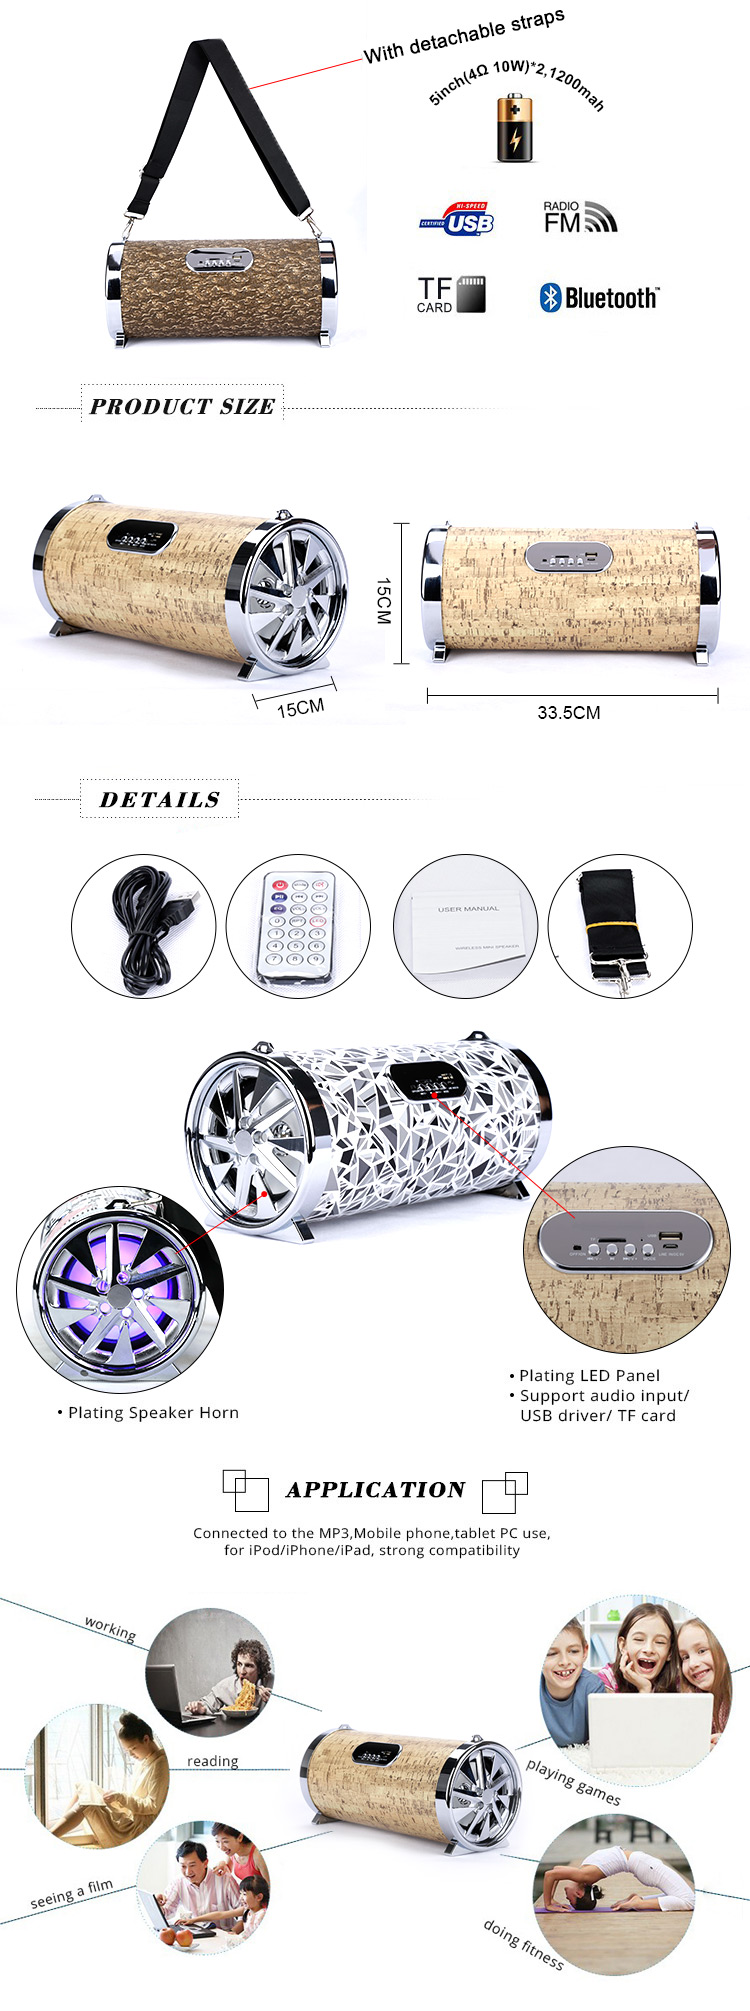 portable stereo digital speaker